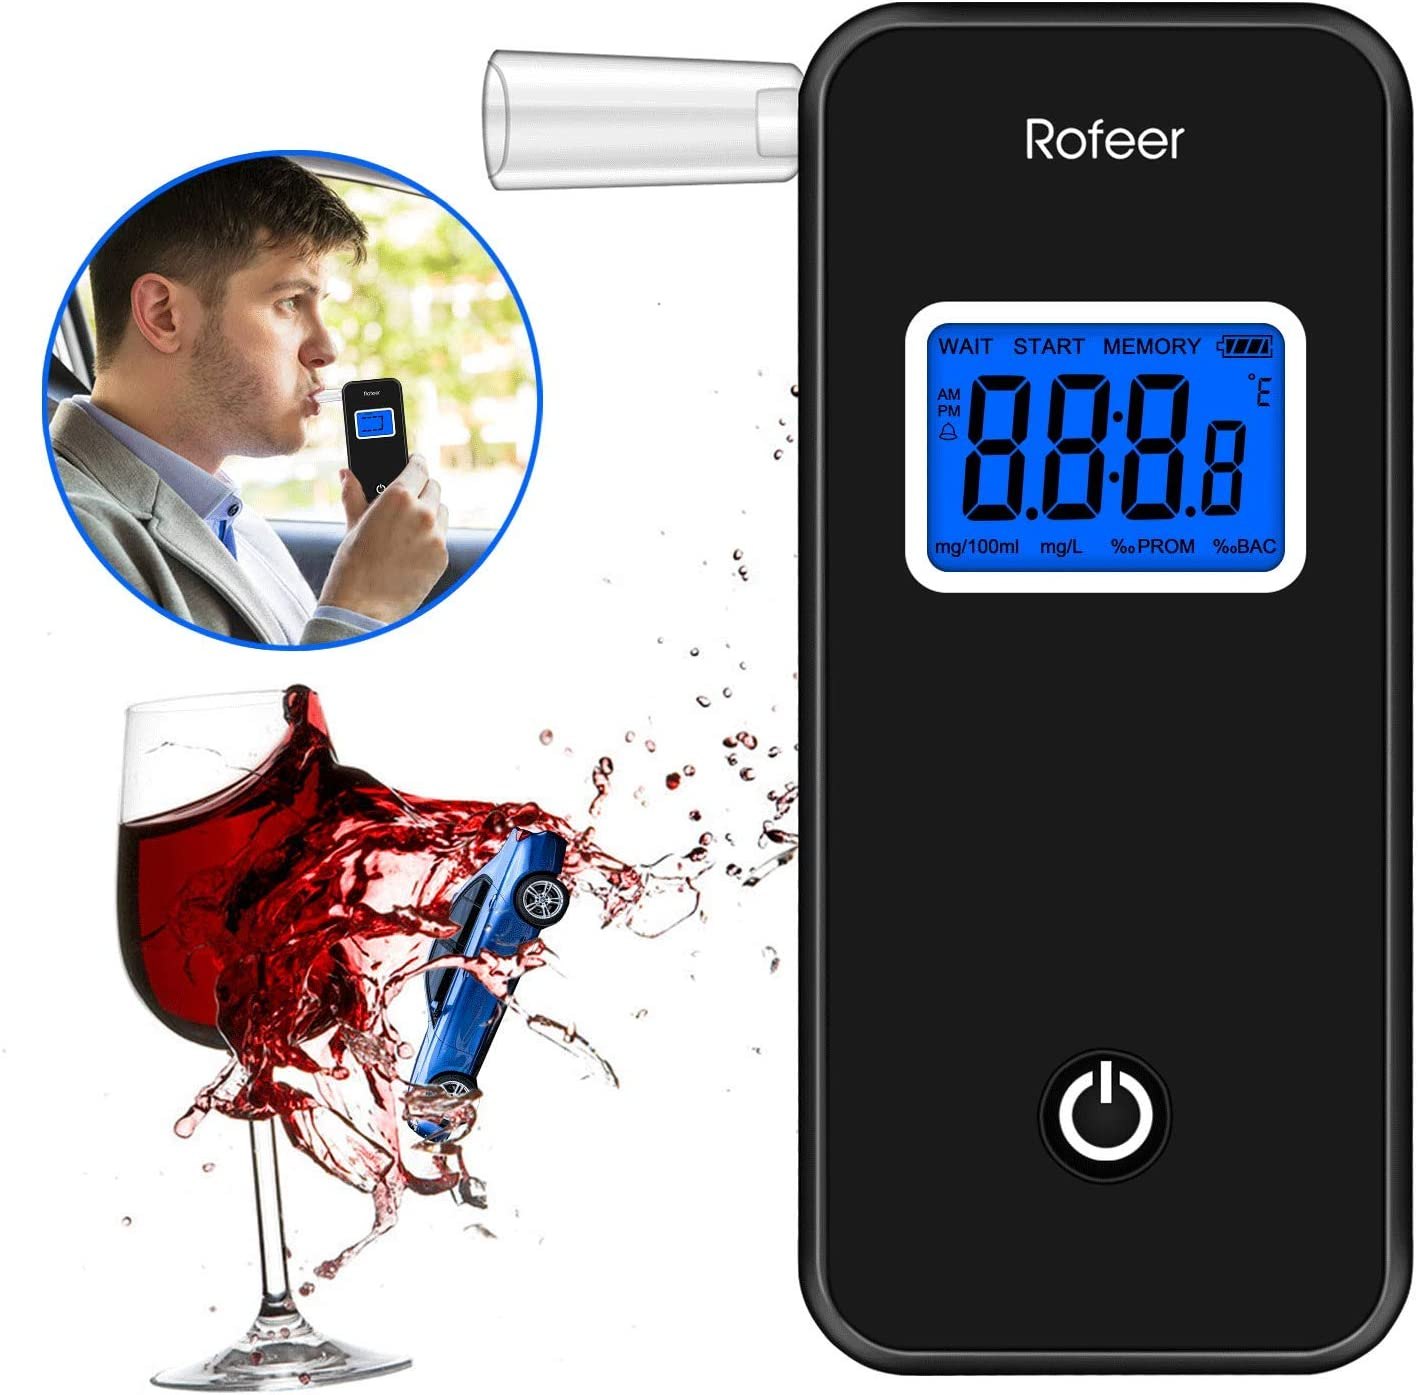 Breathalyzer, Rofeer Digital Blue LED Screen Portable Breath Alcohol Tester with 5 Mouthpieces for Drivers Or Home Use, Auto Power Off, Sound Alarm, Current Temperature Display